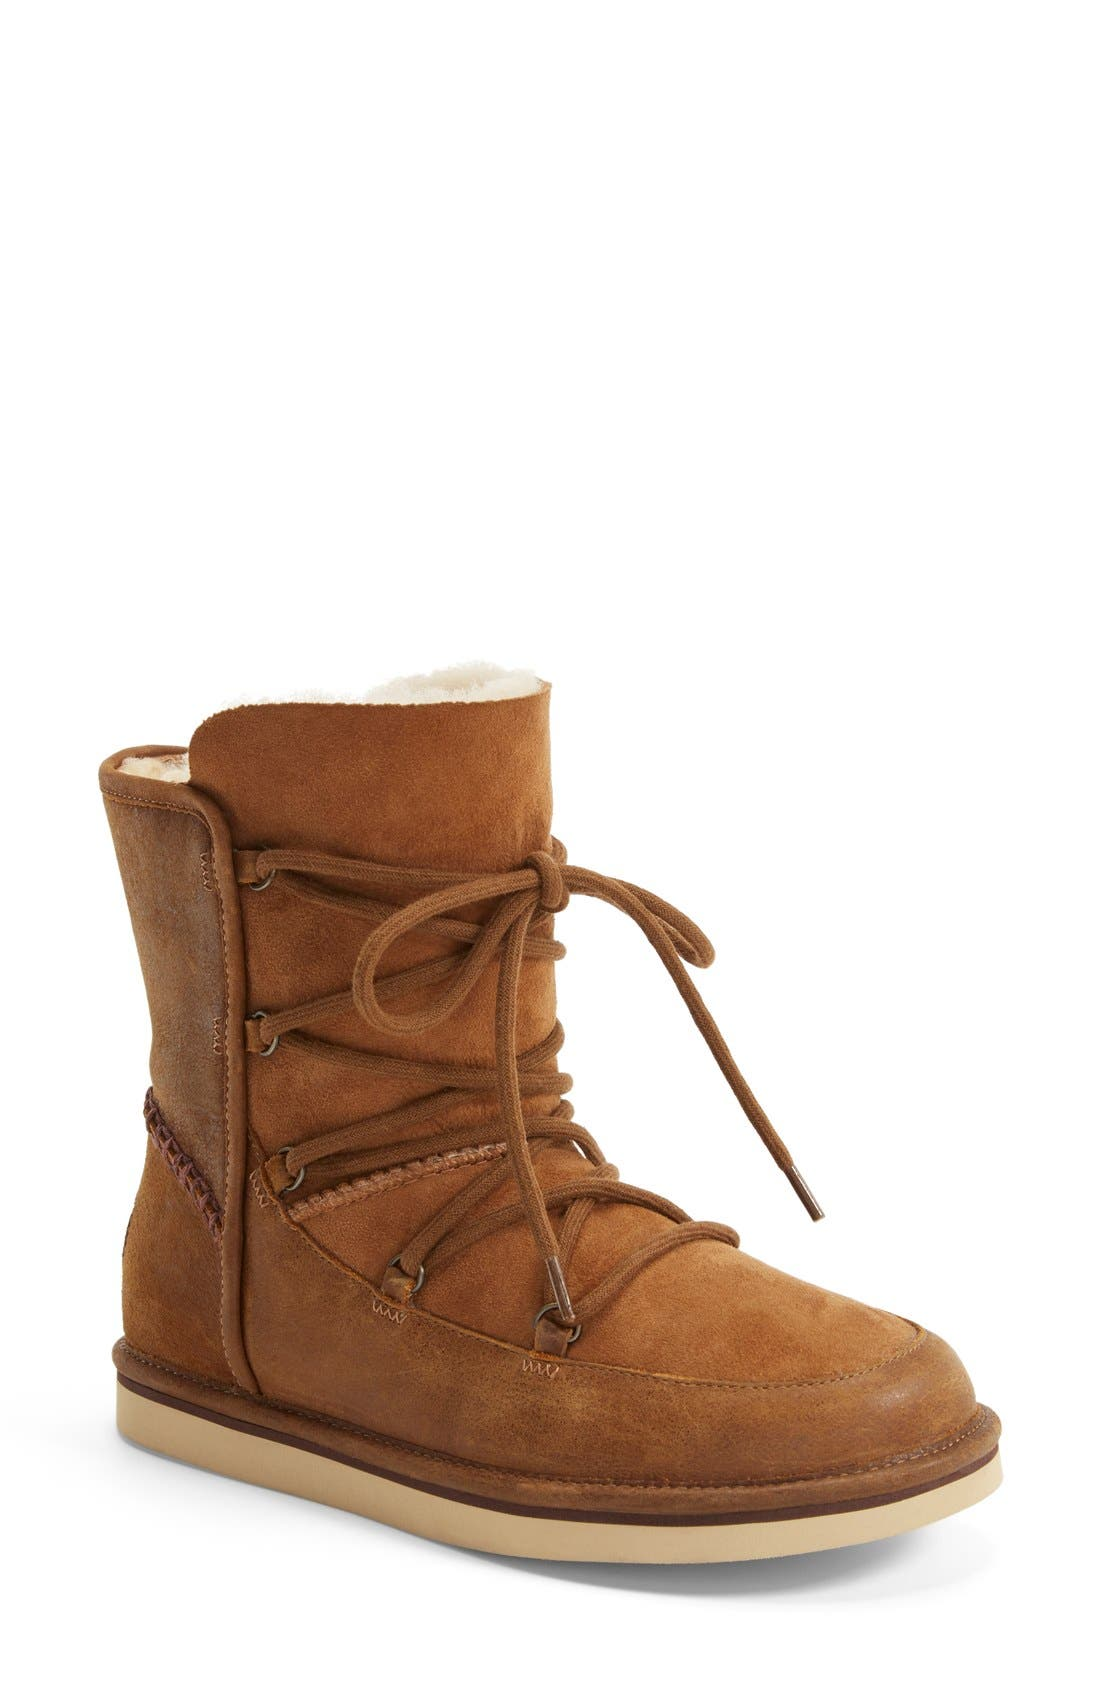 Alternate Image 1 Selected - UGG® Lodge Water Resistant Lace-Up Boot (Women)